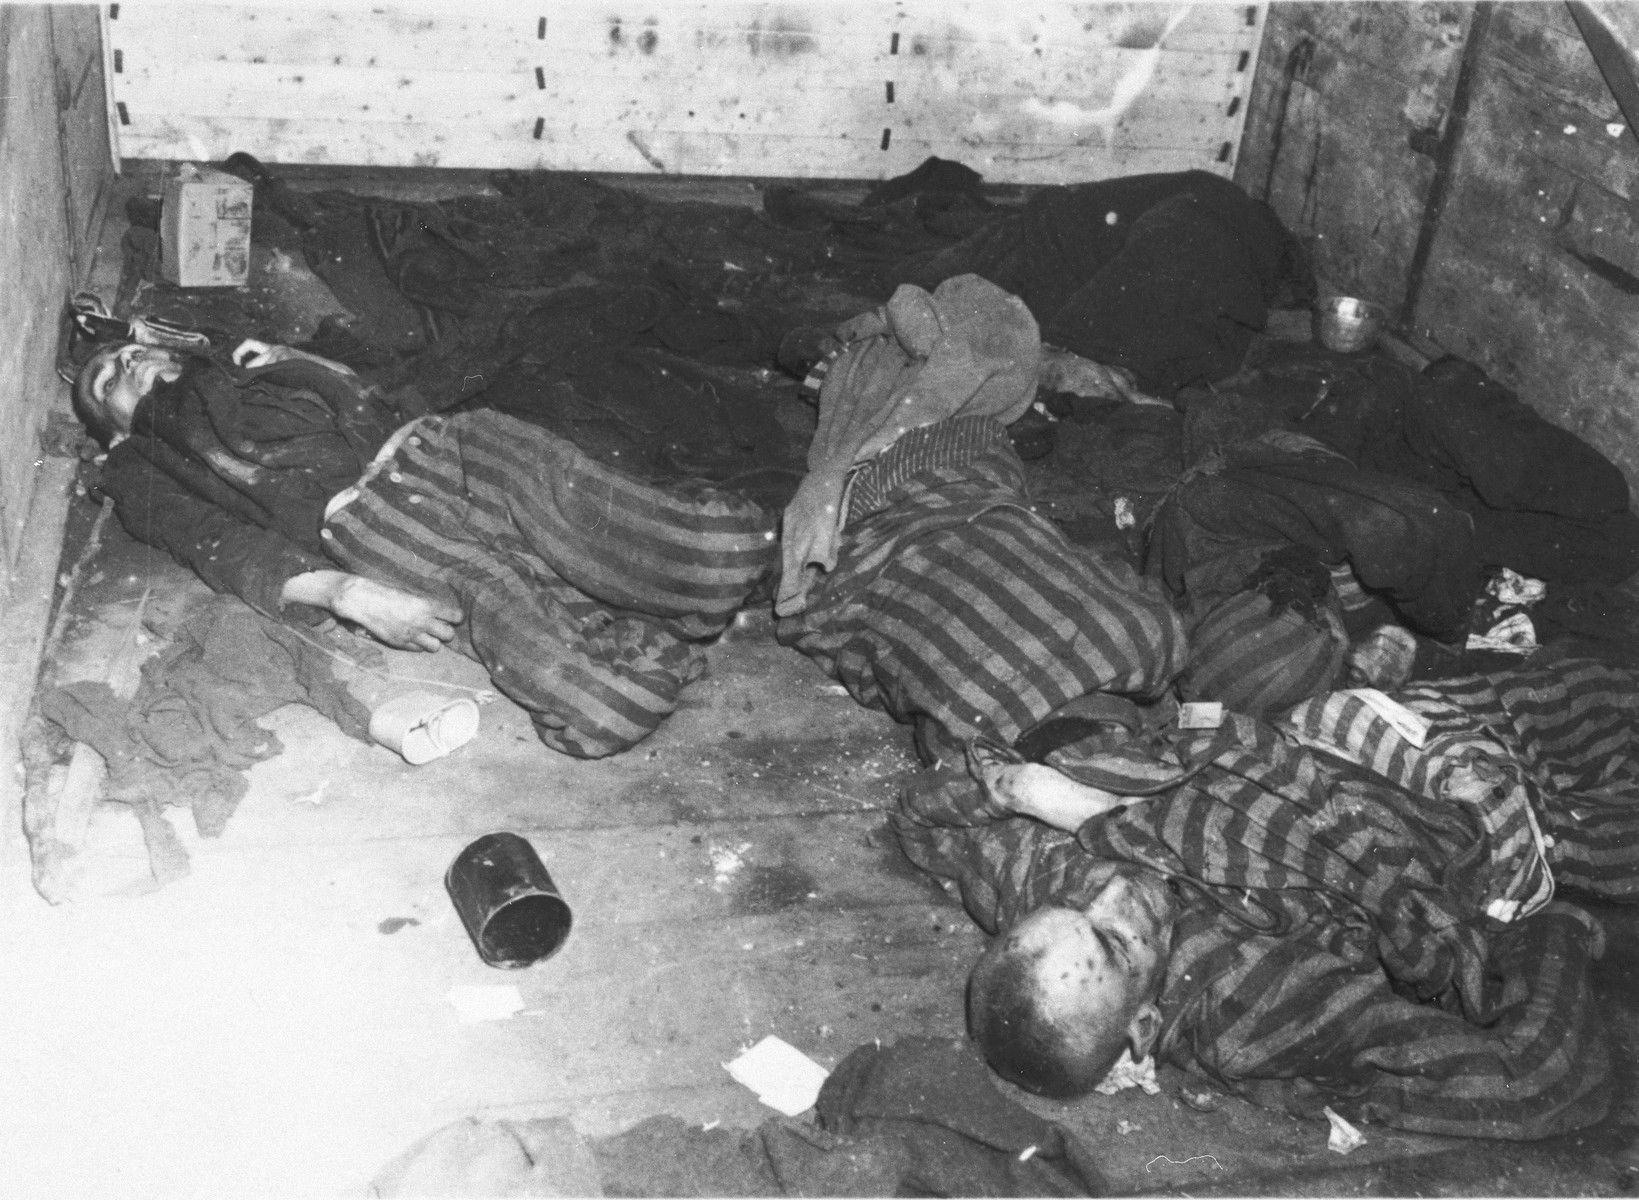 The bodies of former concentration camp prisoners lie in a railcar in Schwandorf.